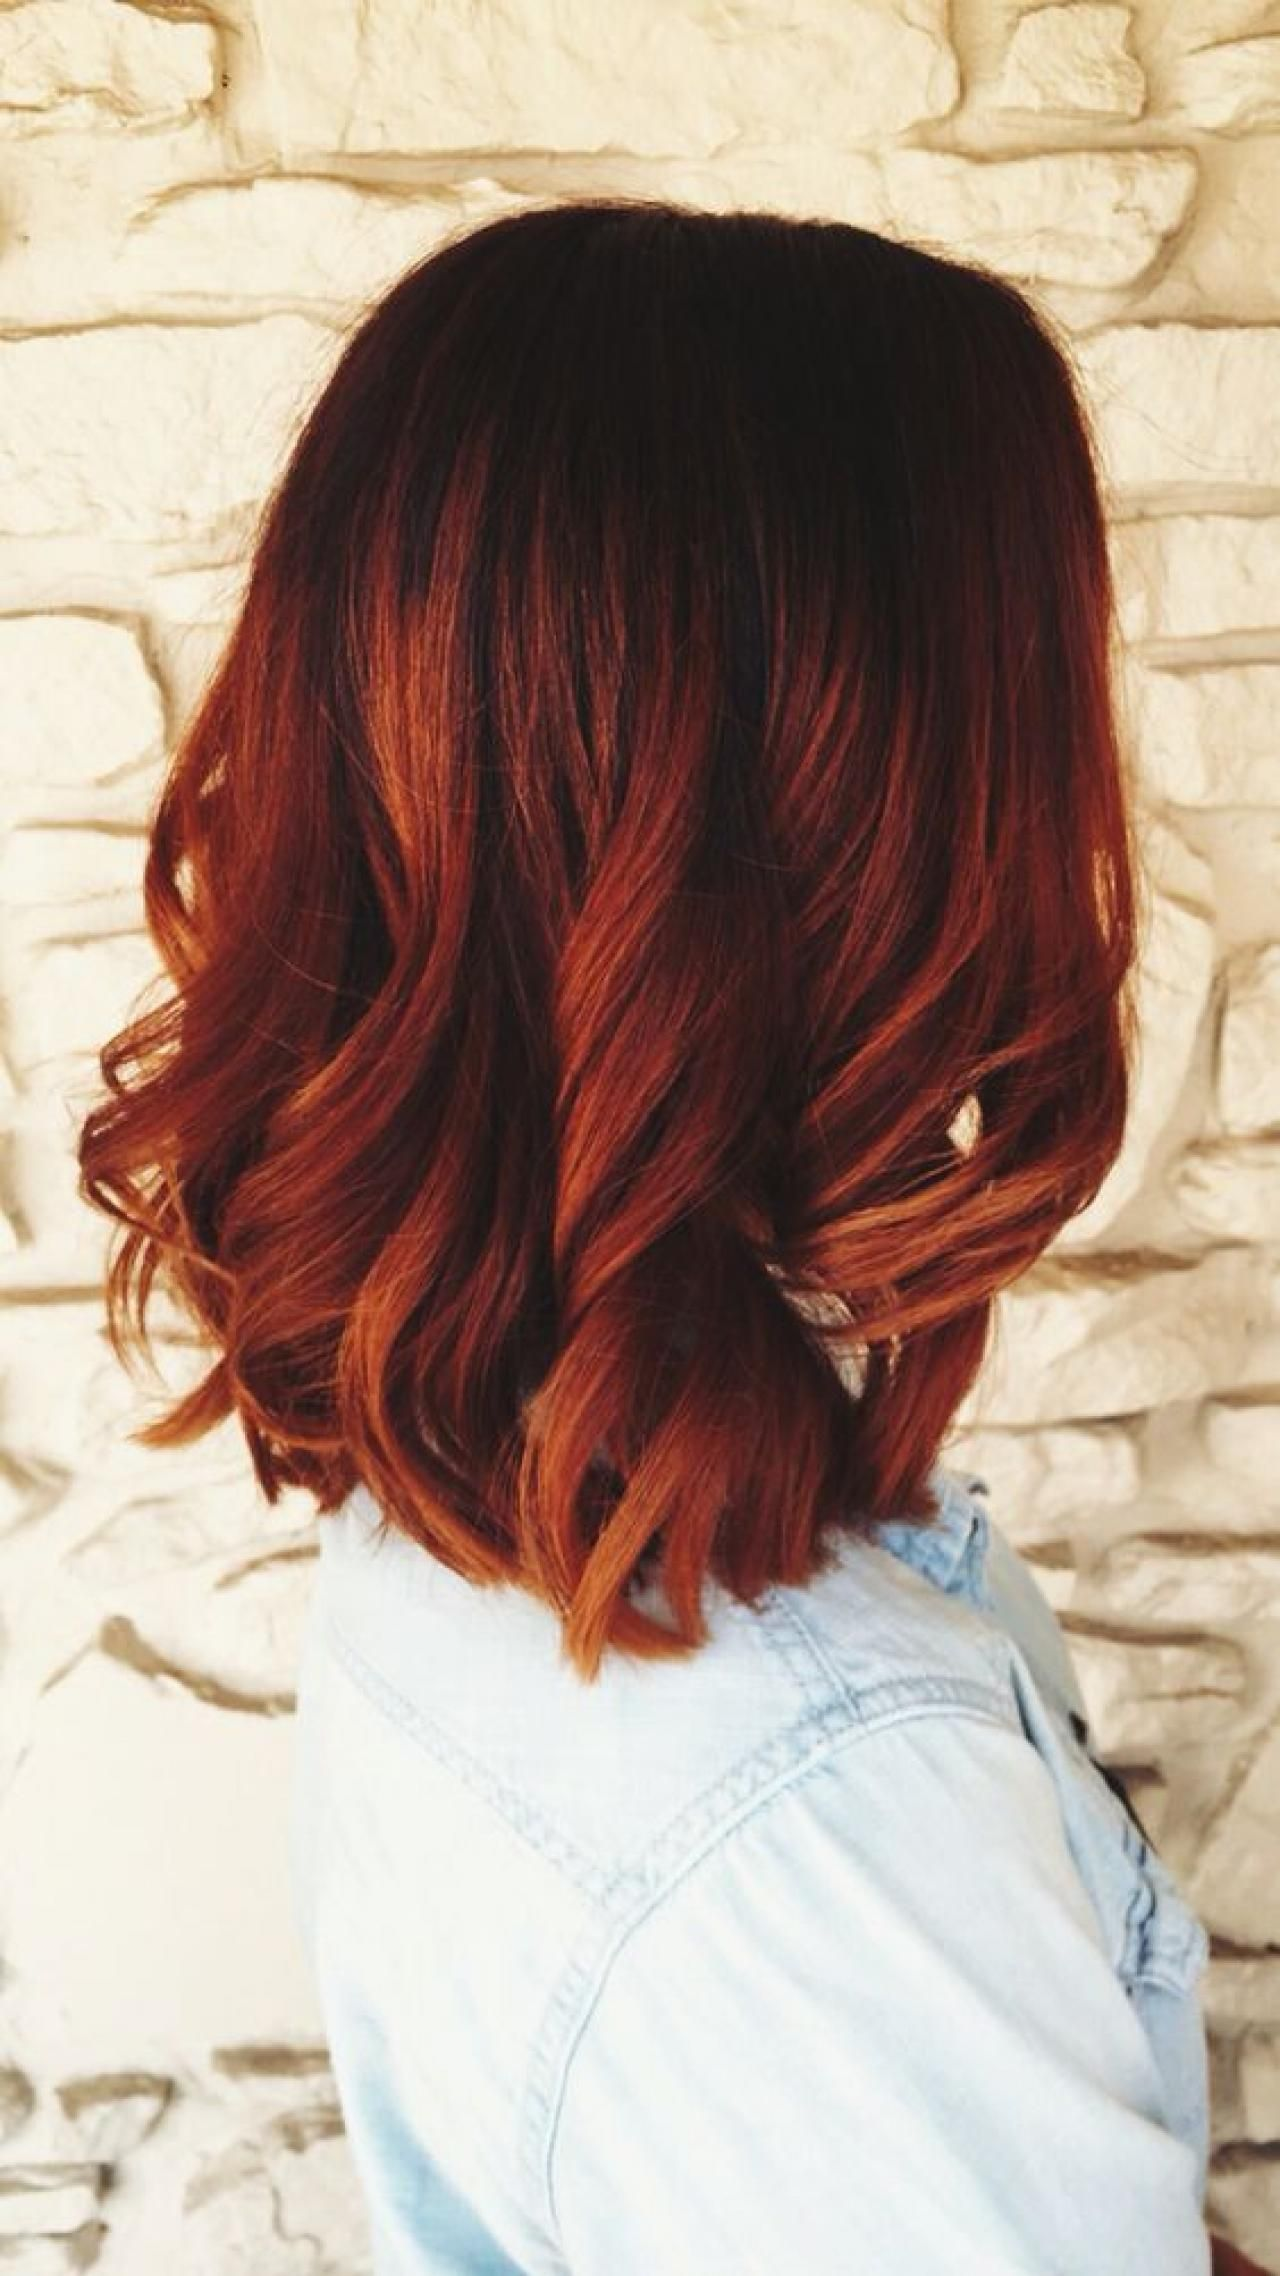 Red ombre hair hair ideas pinterest red ombre hair red ombre